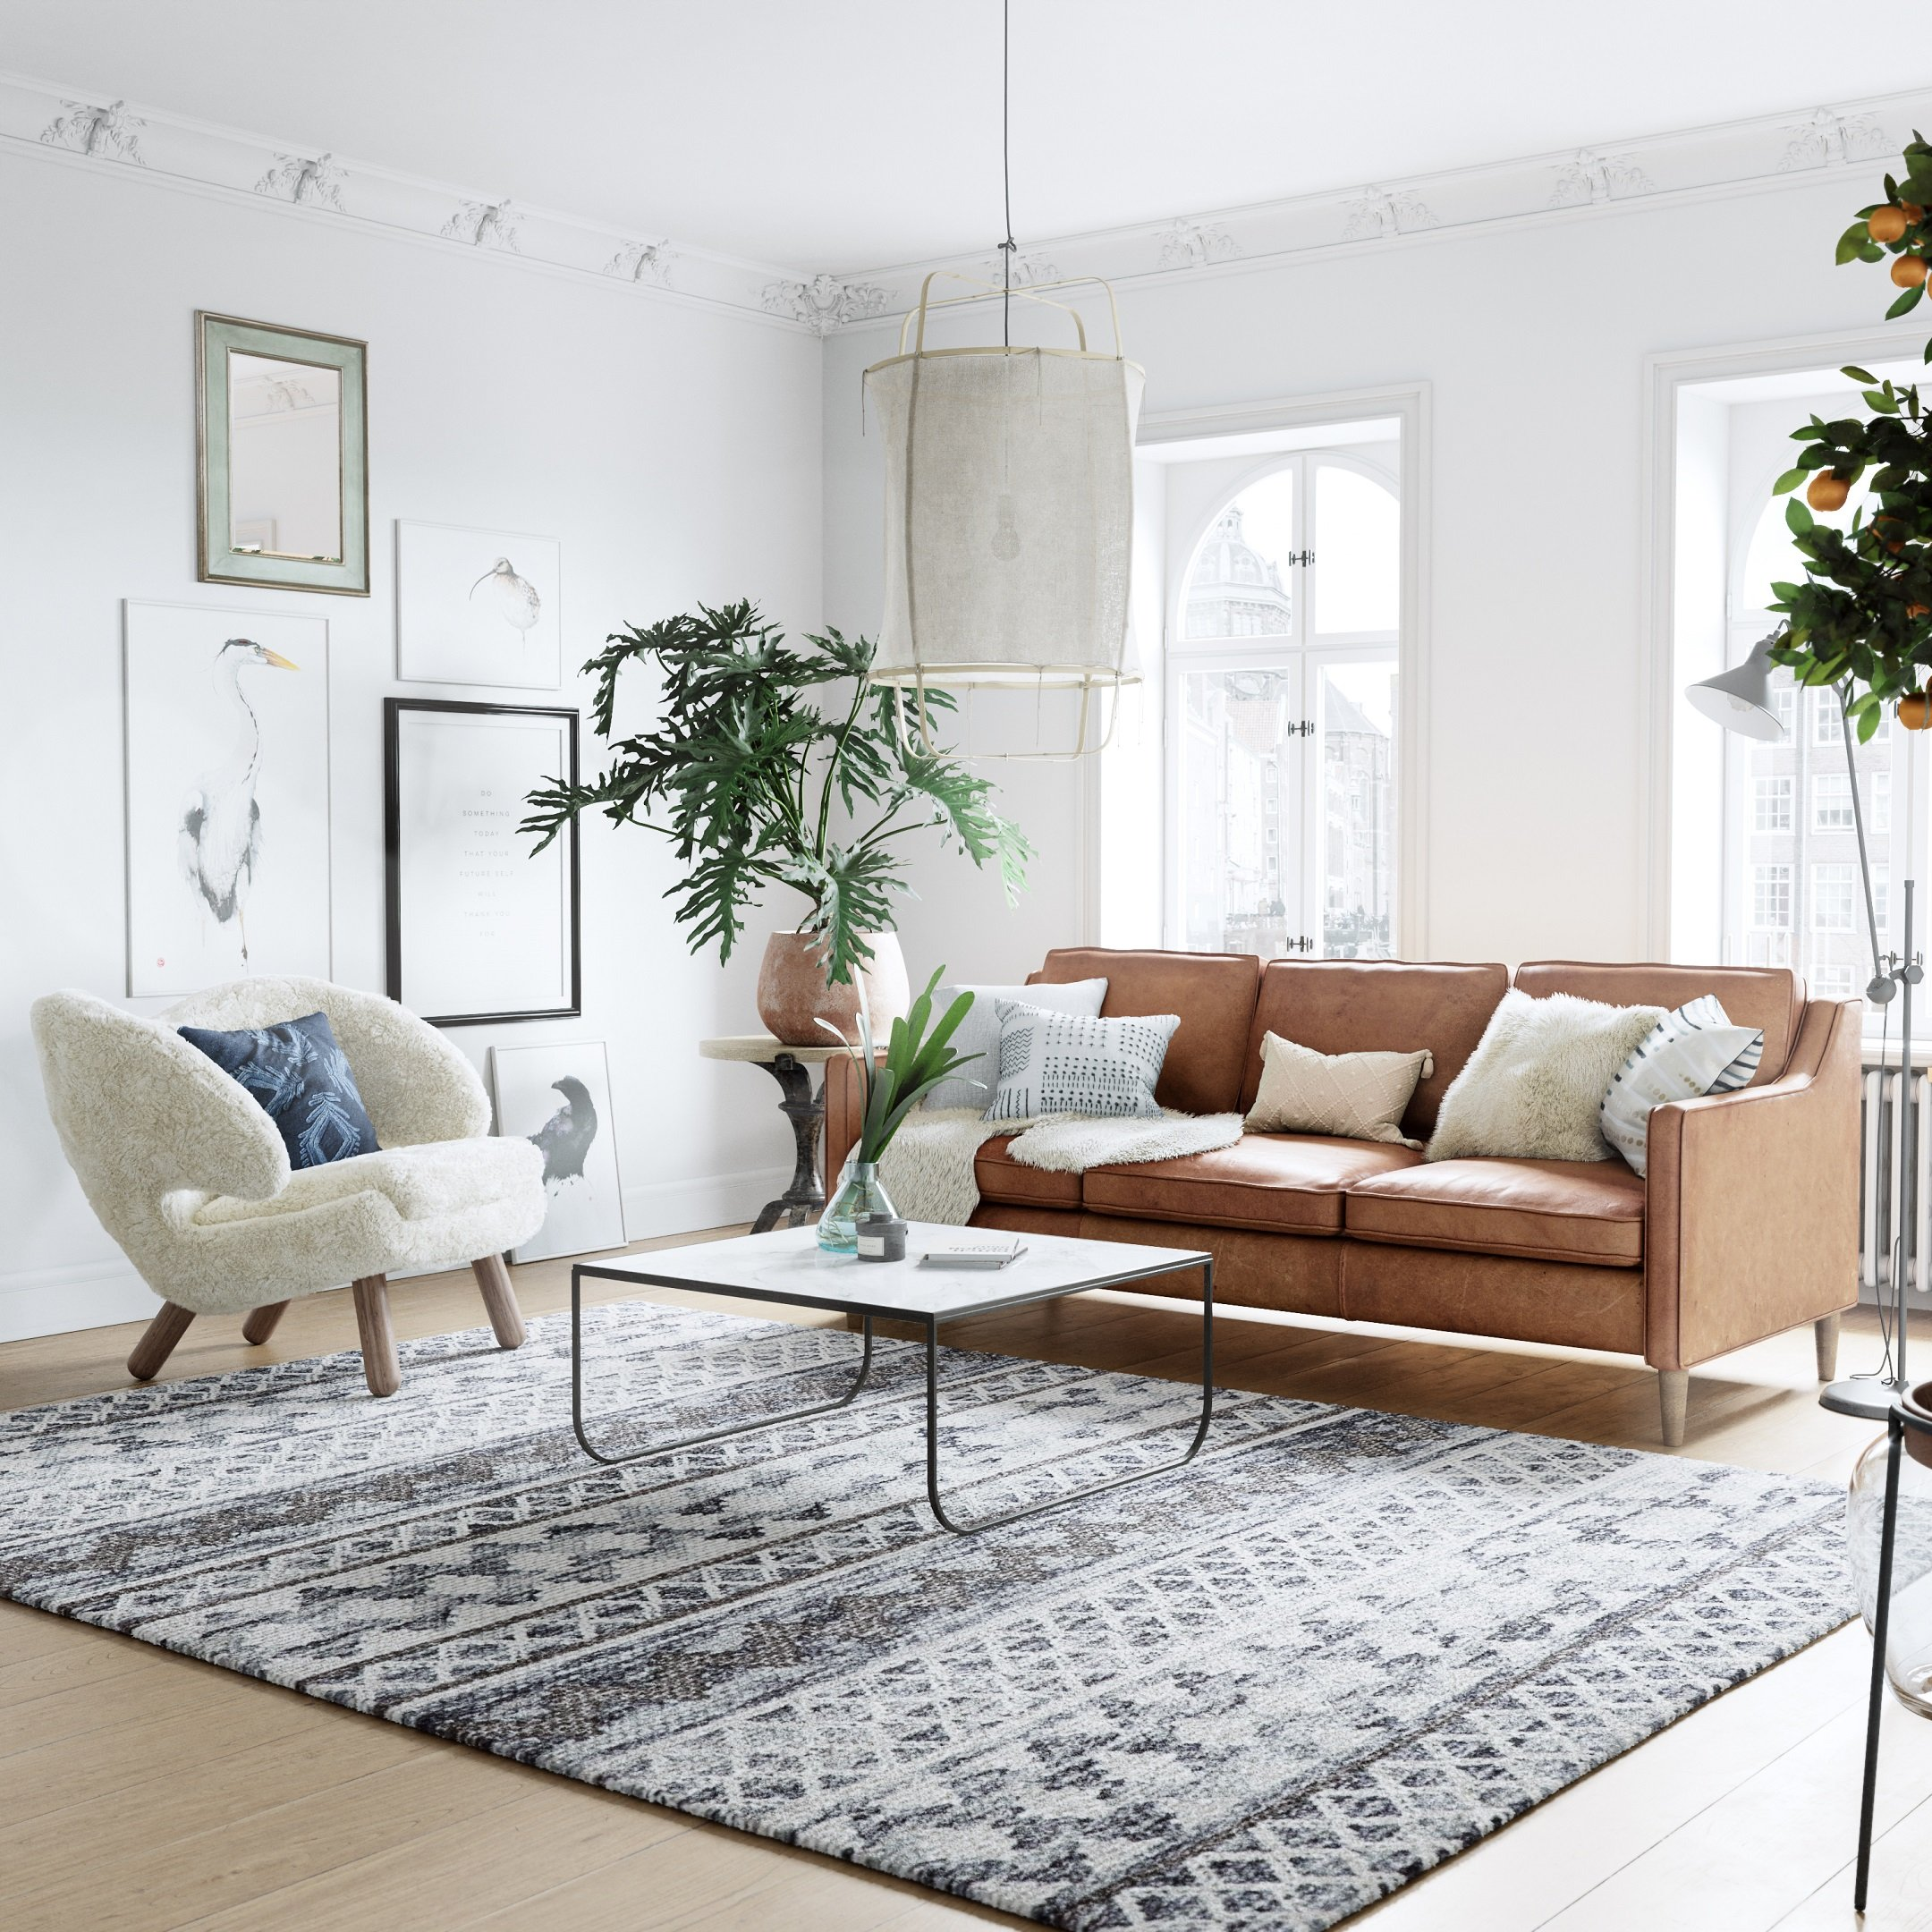 3D Visualization of a Scandinavian-Style Living Room